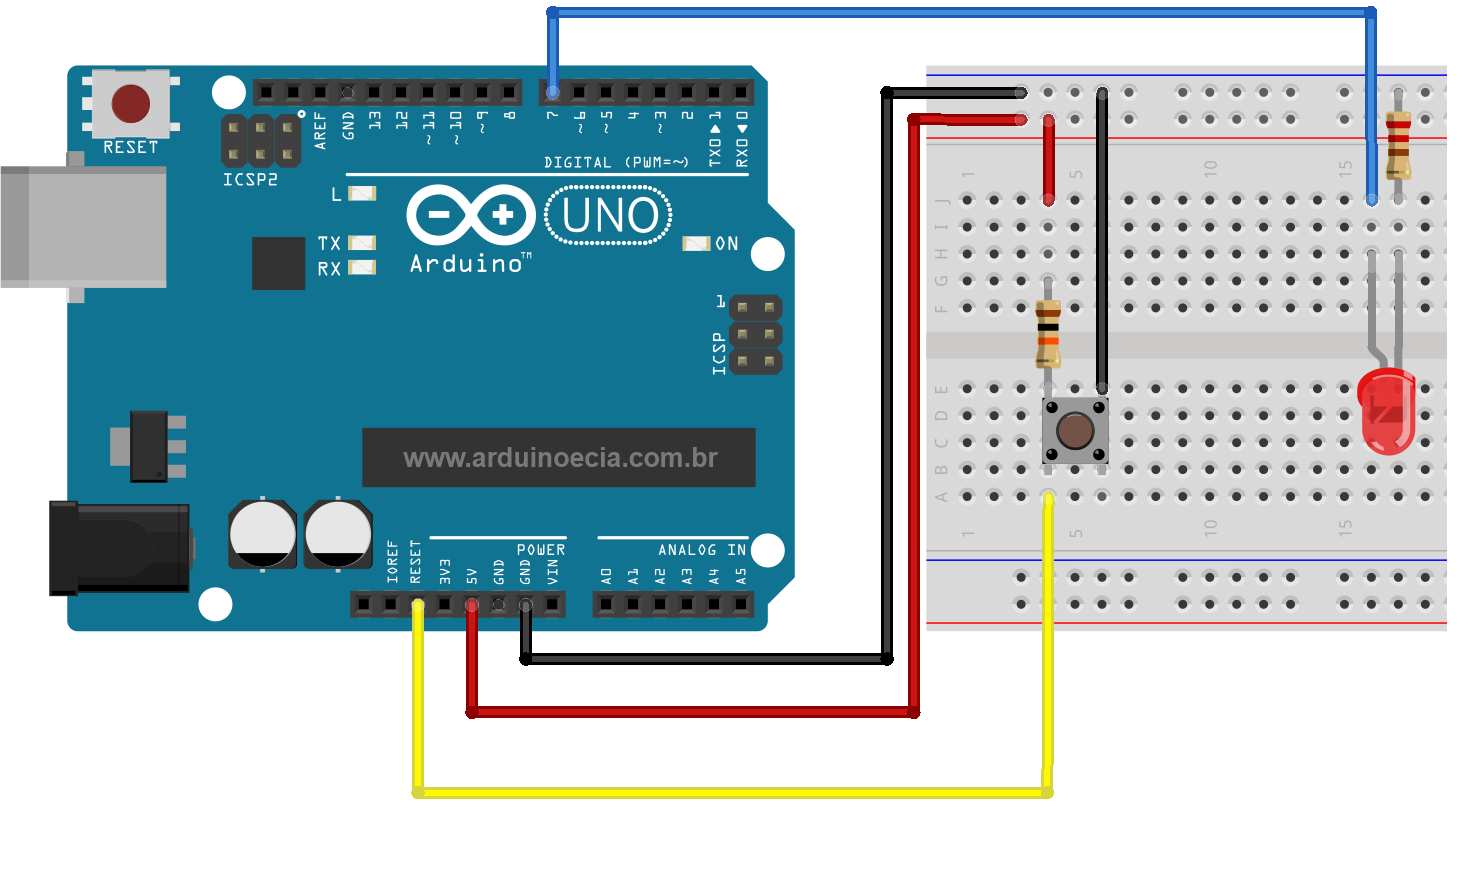 how to download adublock on arduino